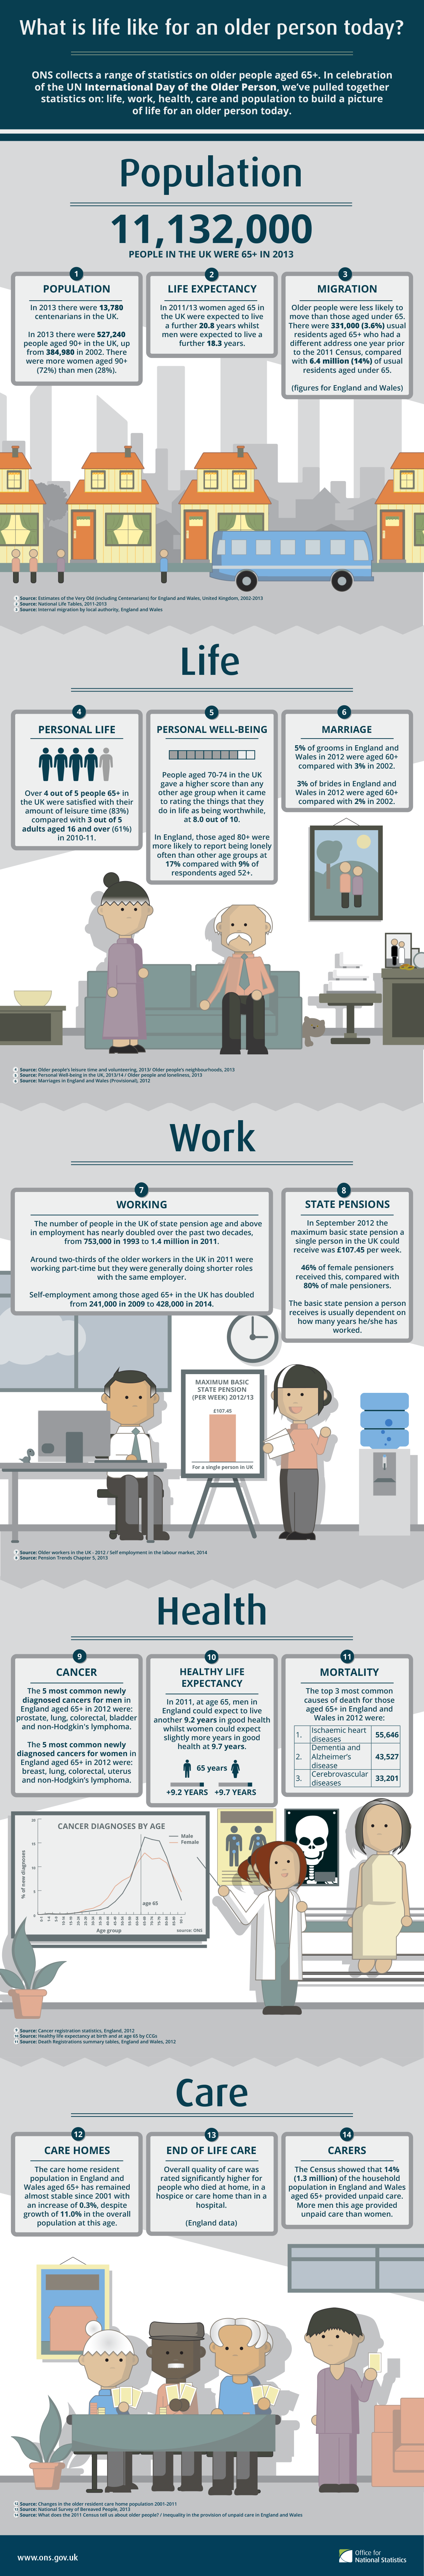 Infographic by ONS showing what life is like for an older person today